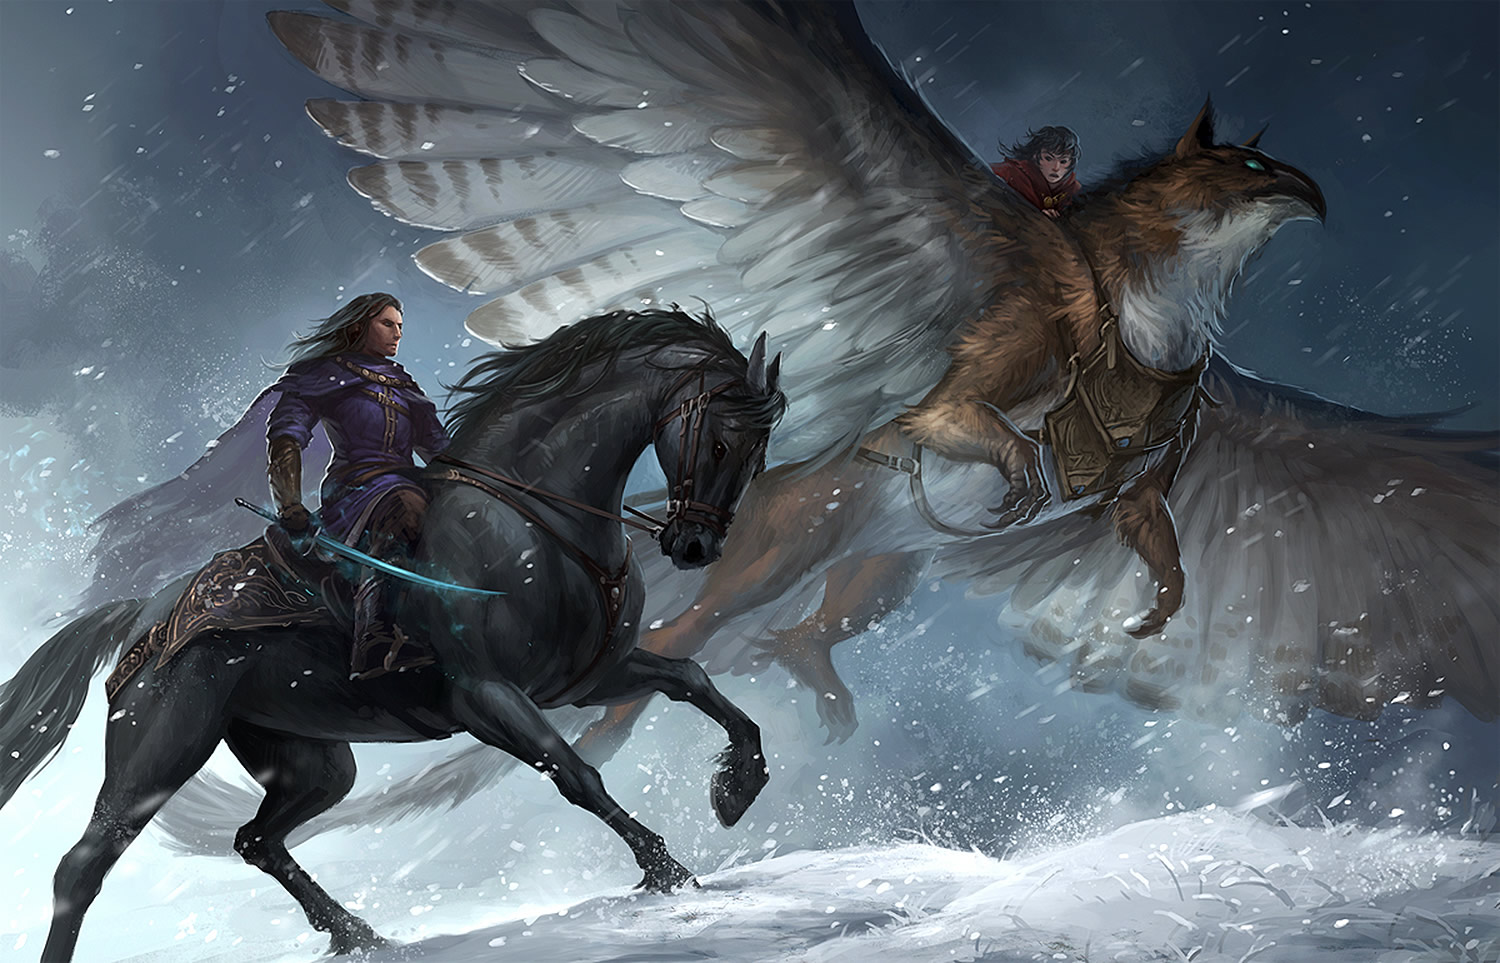 red wings, horse and bird, digital painting by Sandara